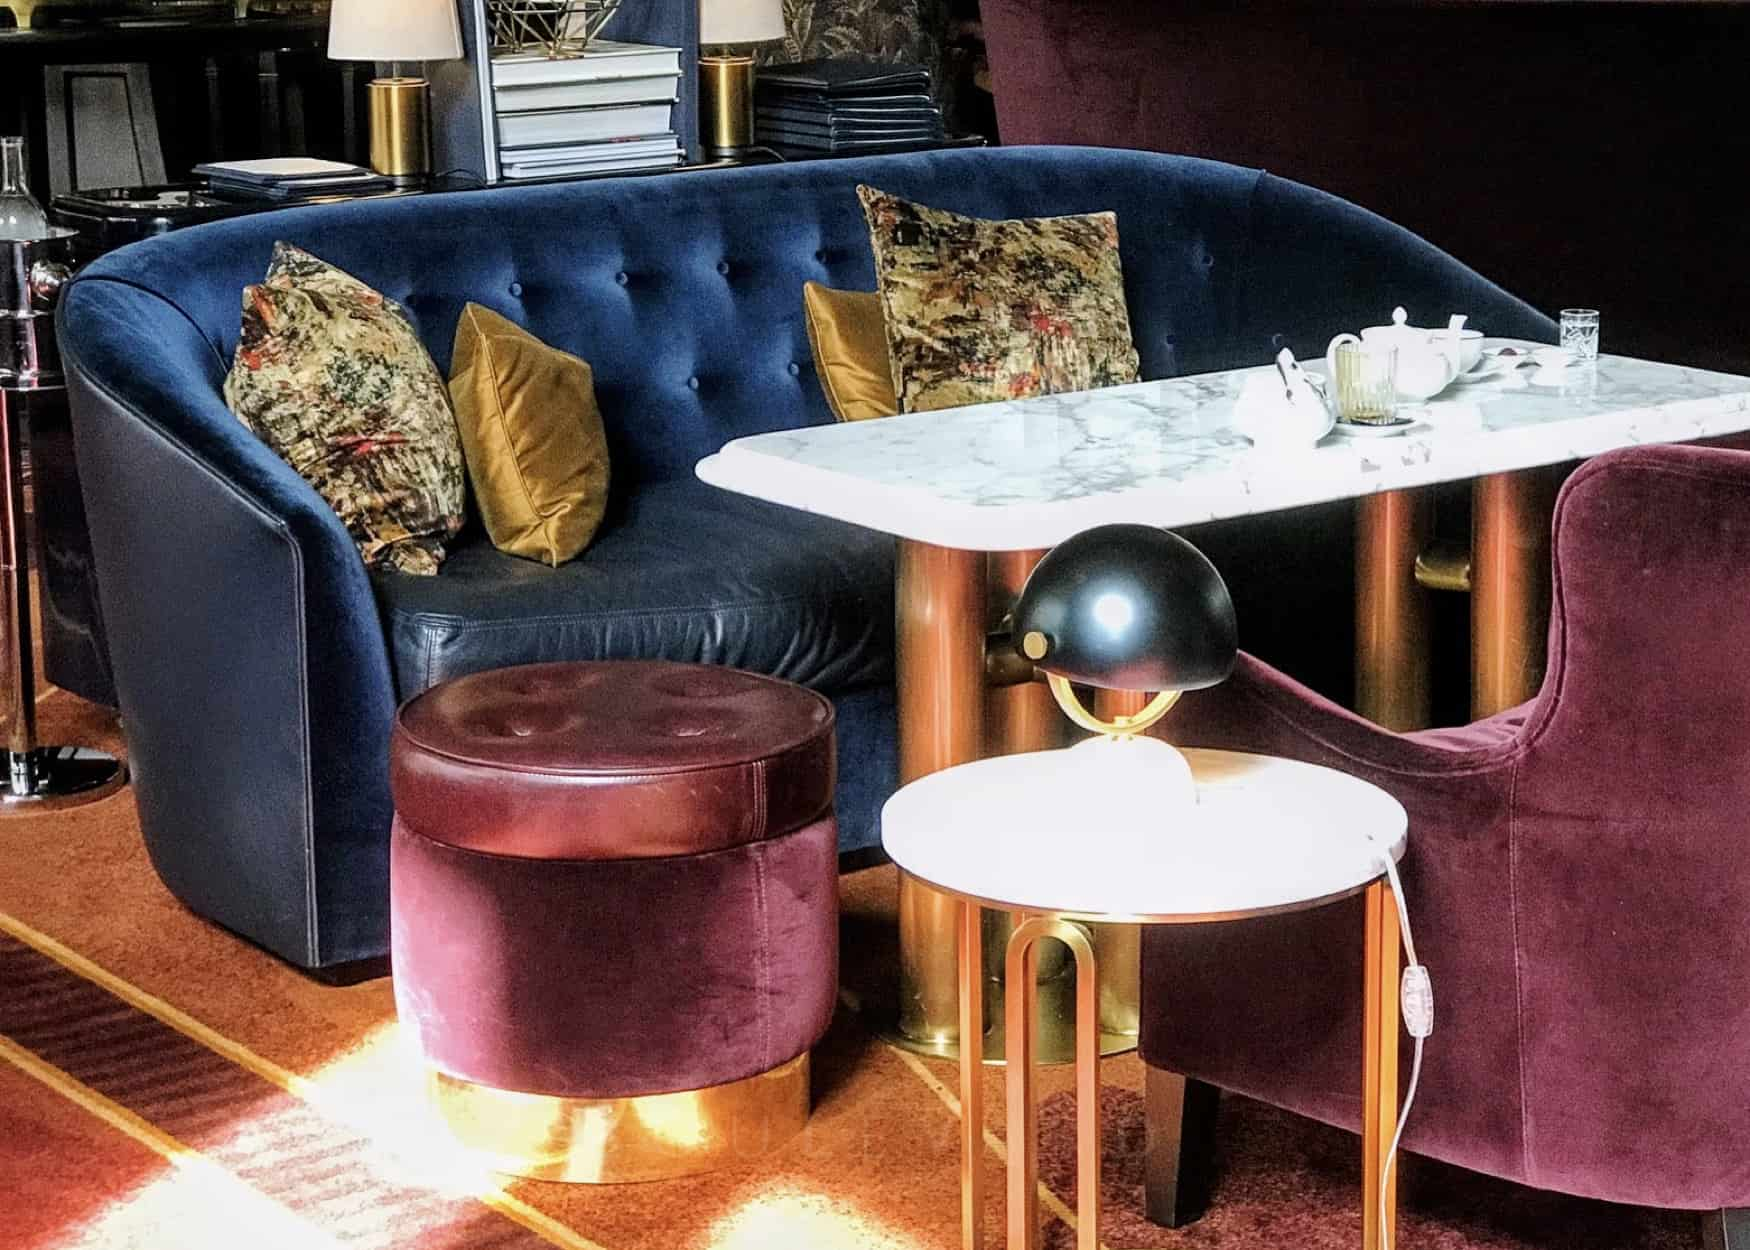 Art deco interiors: give us a decadent lounge dedicated to Atlas bar's style